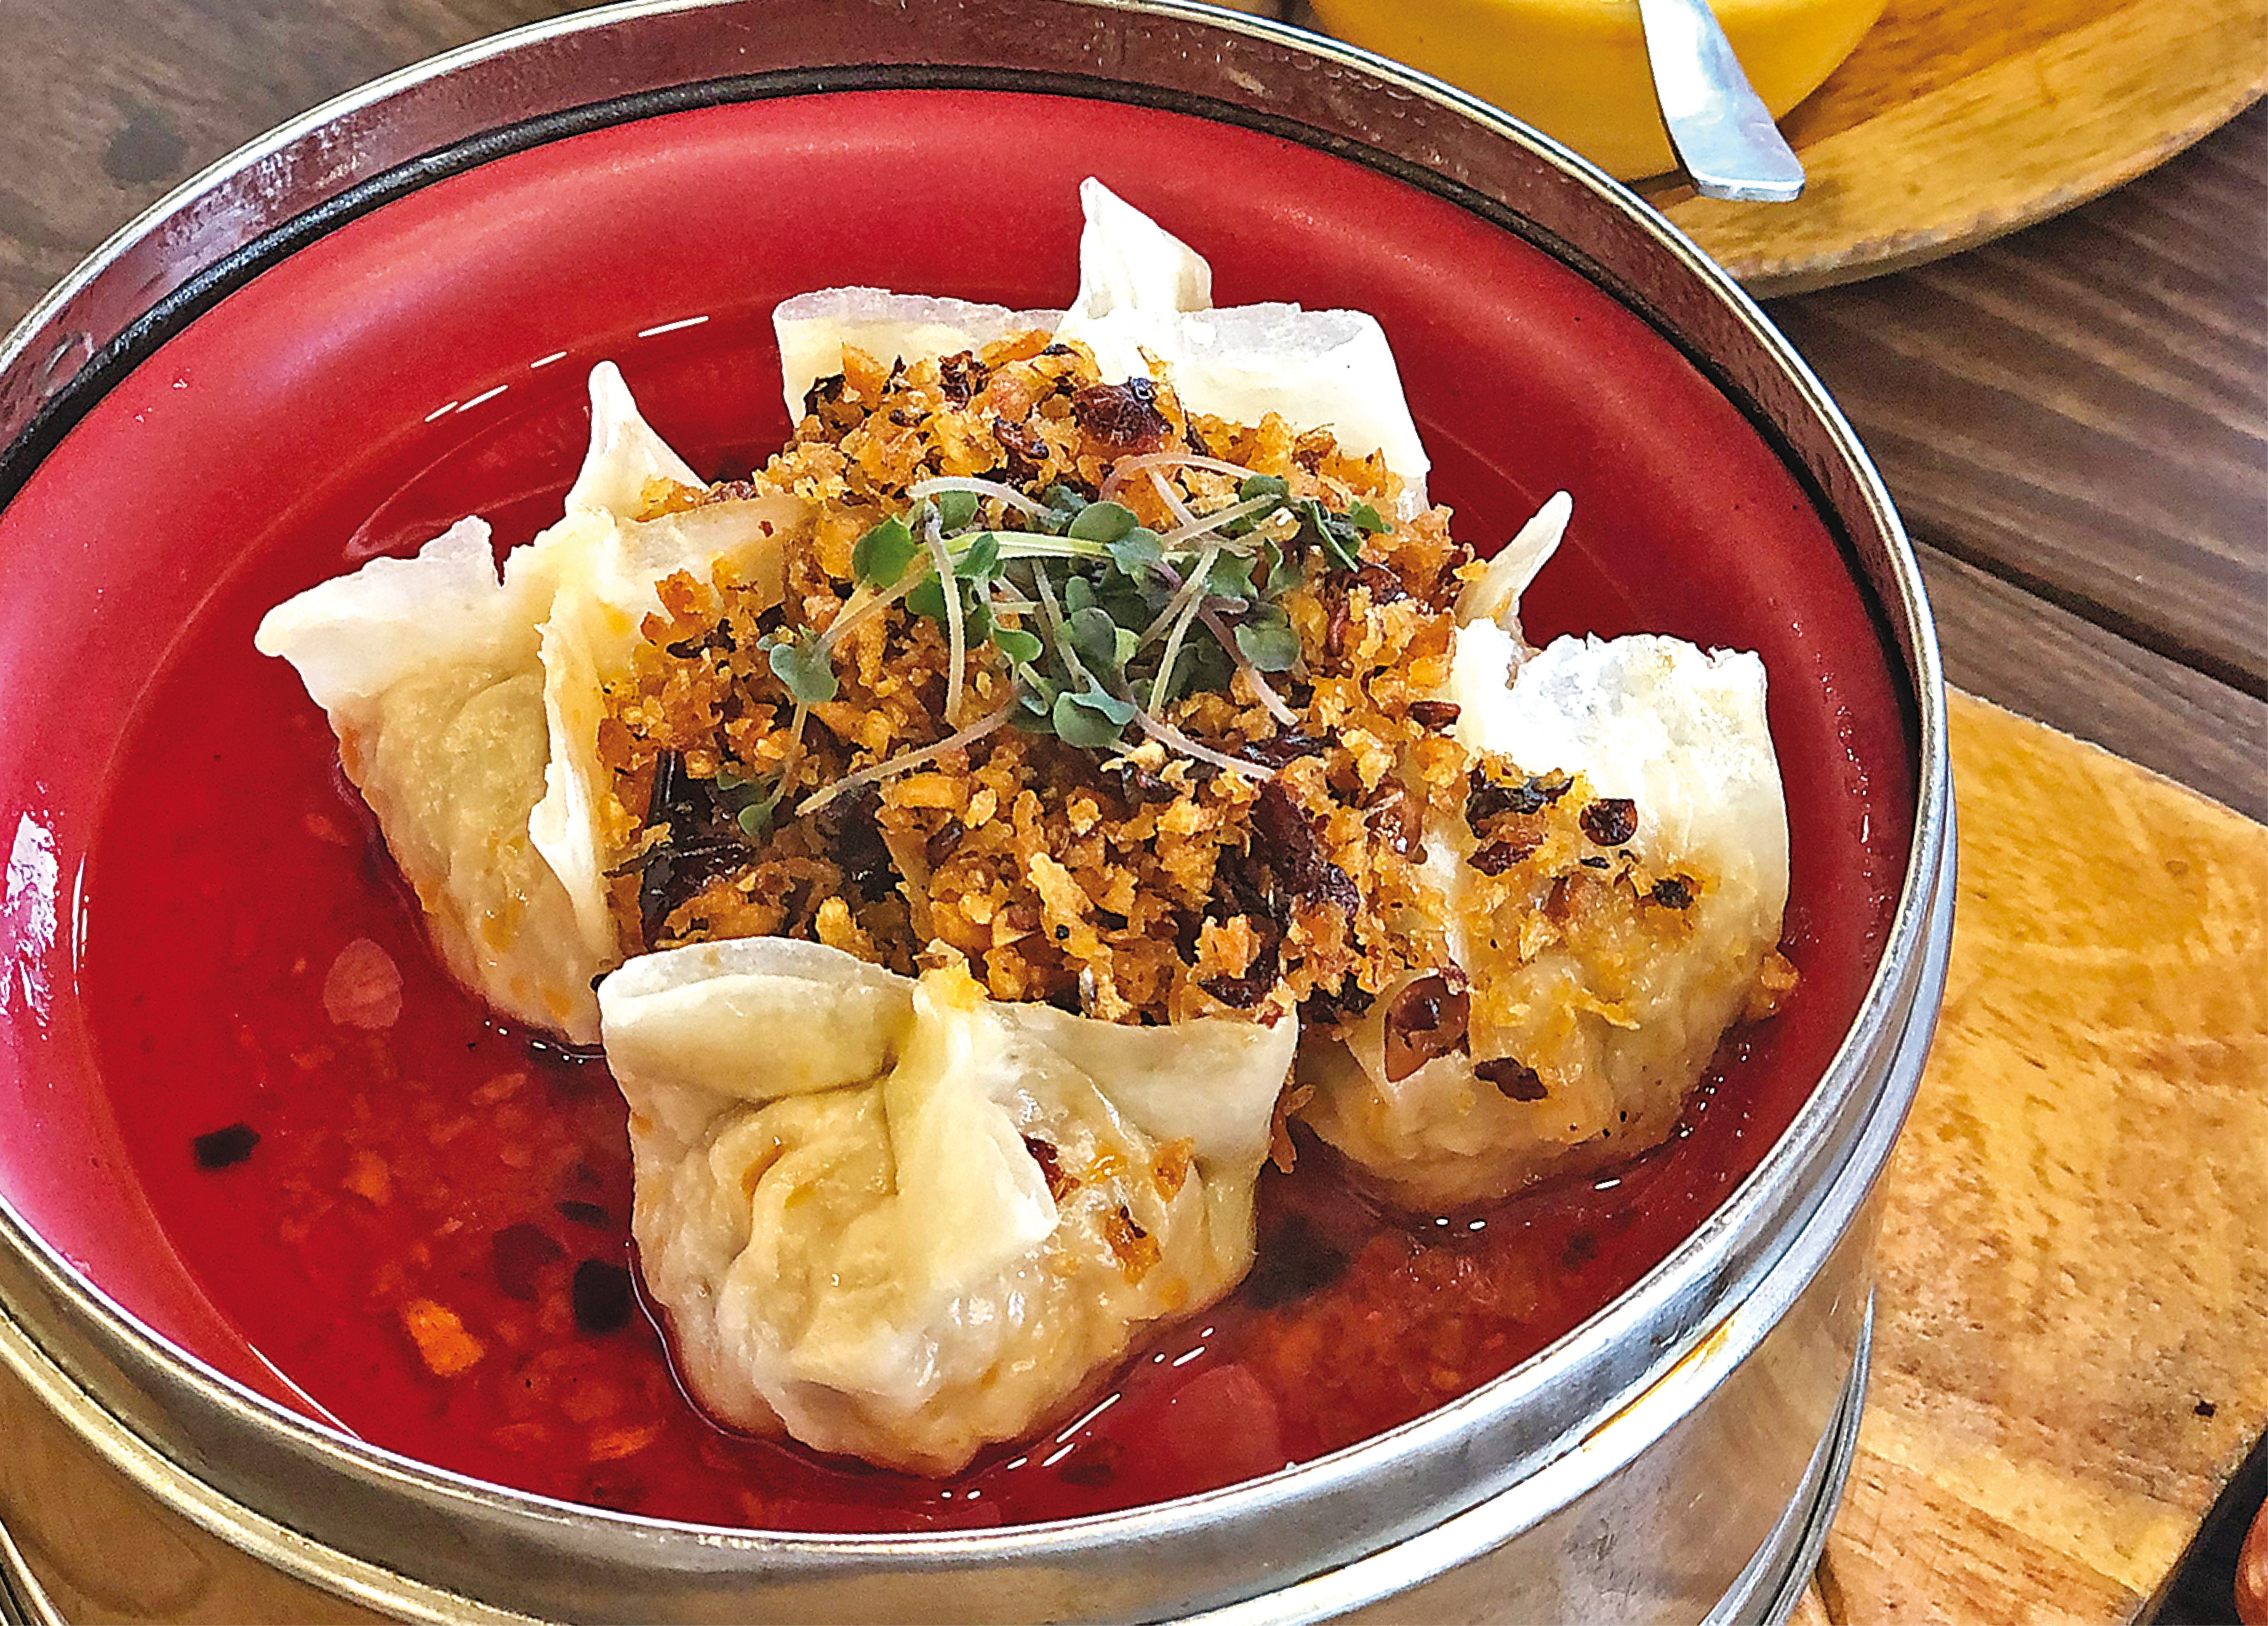 A favorite (non-authentic) dim sum is a dumpling in a light red sauce topped with crispy fried garlic